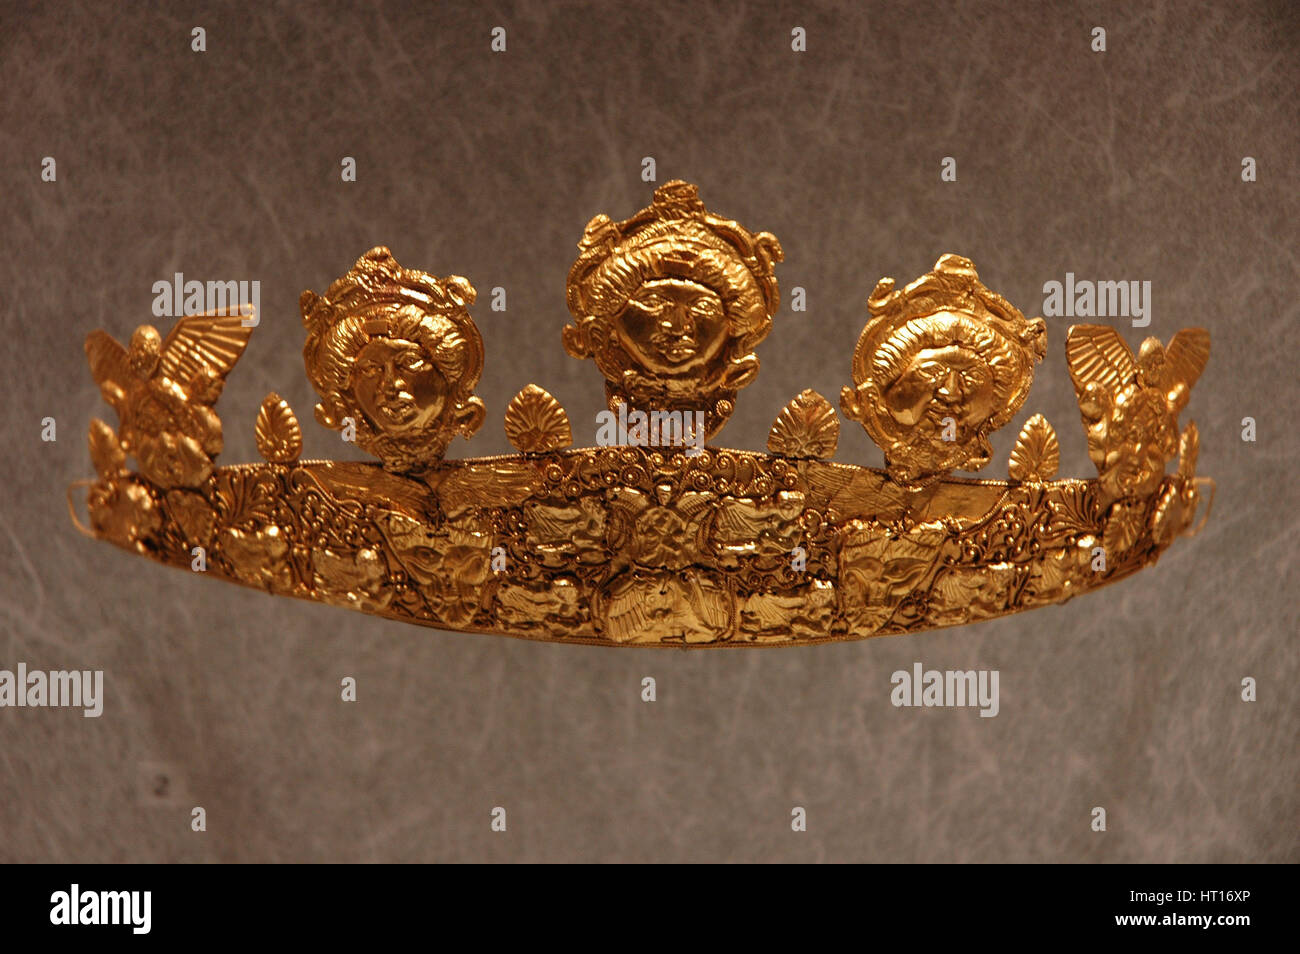 Couronne d'or. Culture : Roman. Lieu d'origine : Rome : ligne de crédit Werner Forman Photo Stock